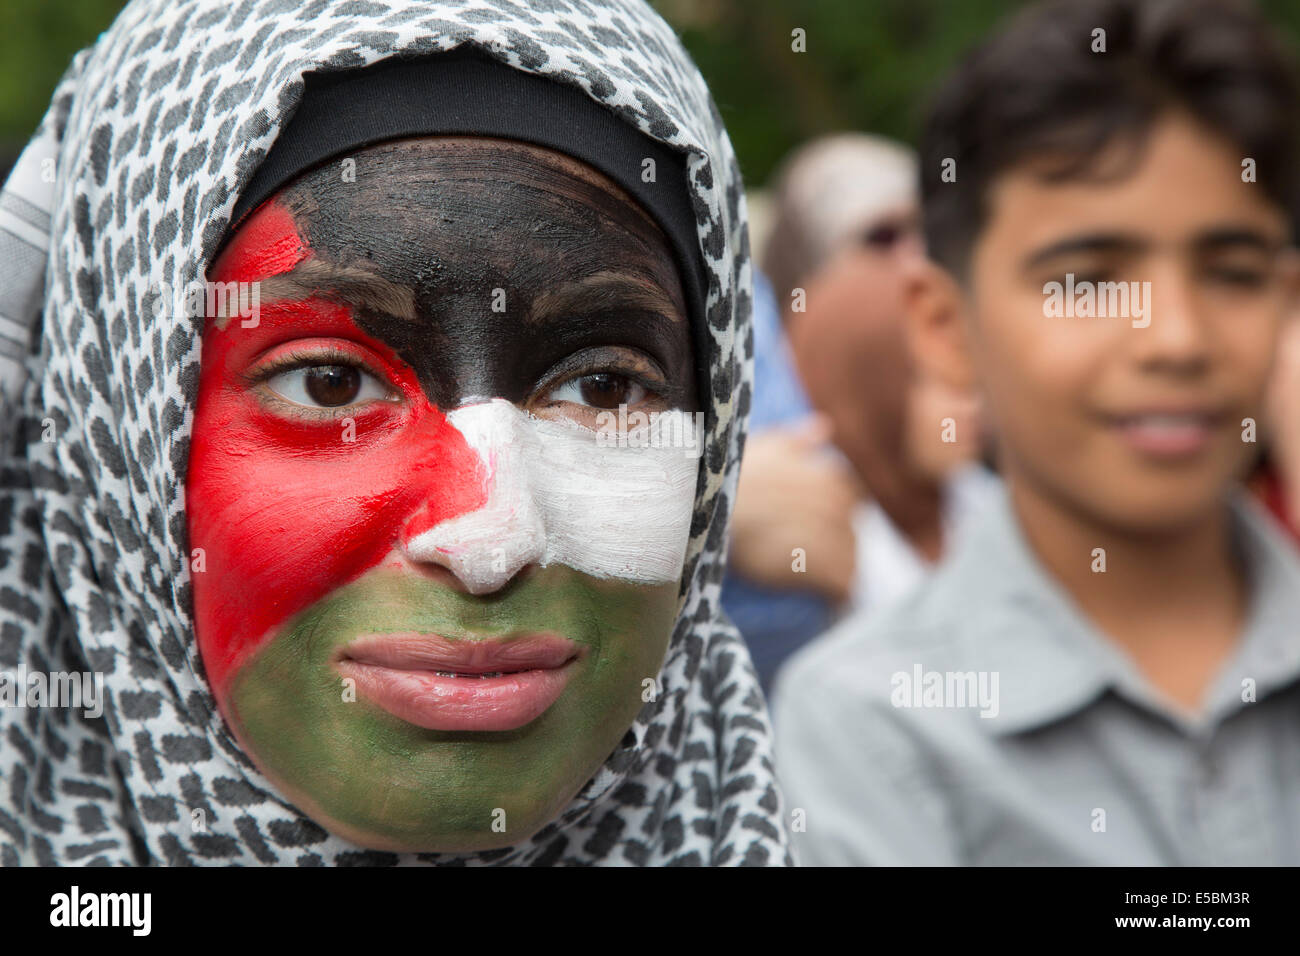 Dearborn, Michigan, USA. Arab-Americans rally at Dearborn city hall to protest Israel's military action in Gaza. - Stock Image